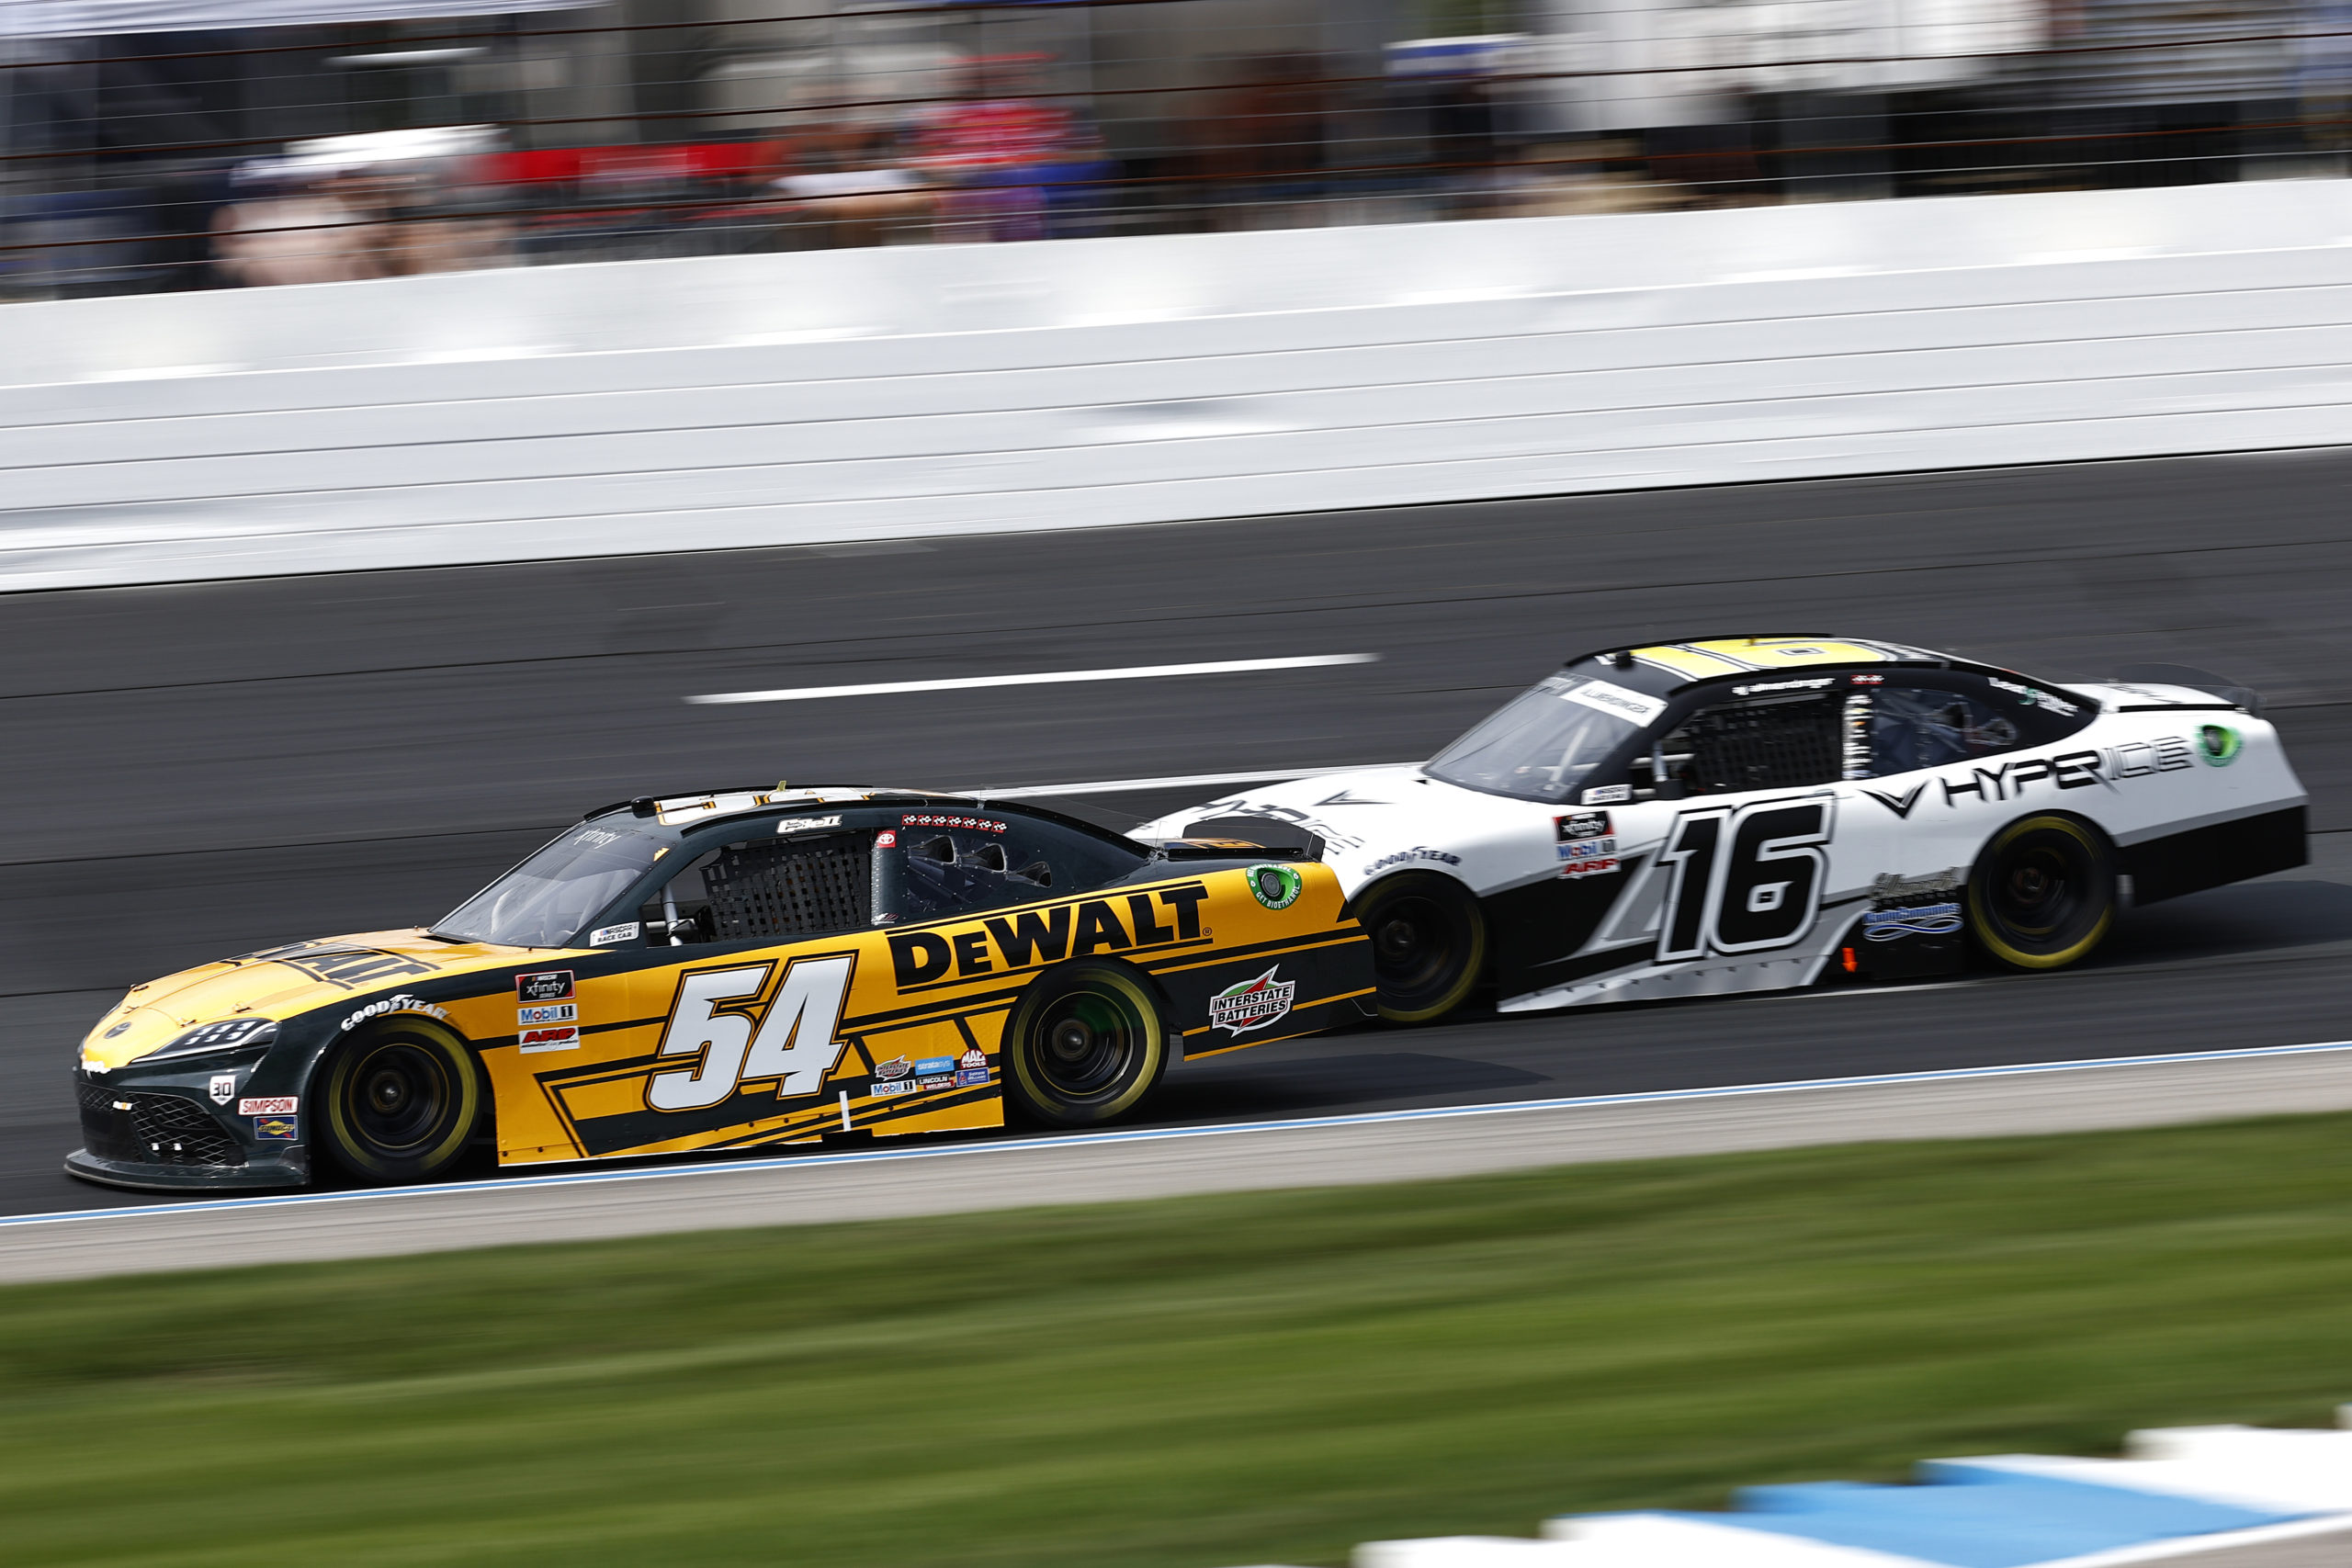 Bell Blows Them Away with New Hampshire Hat Trick